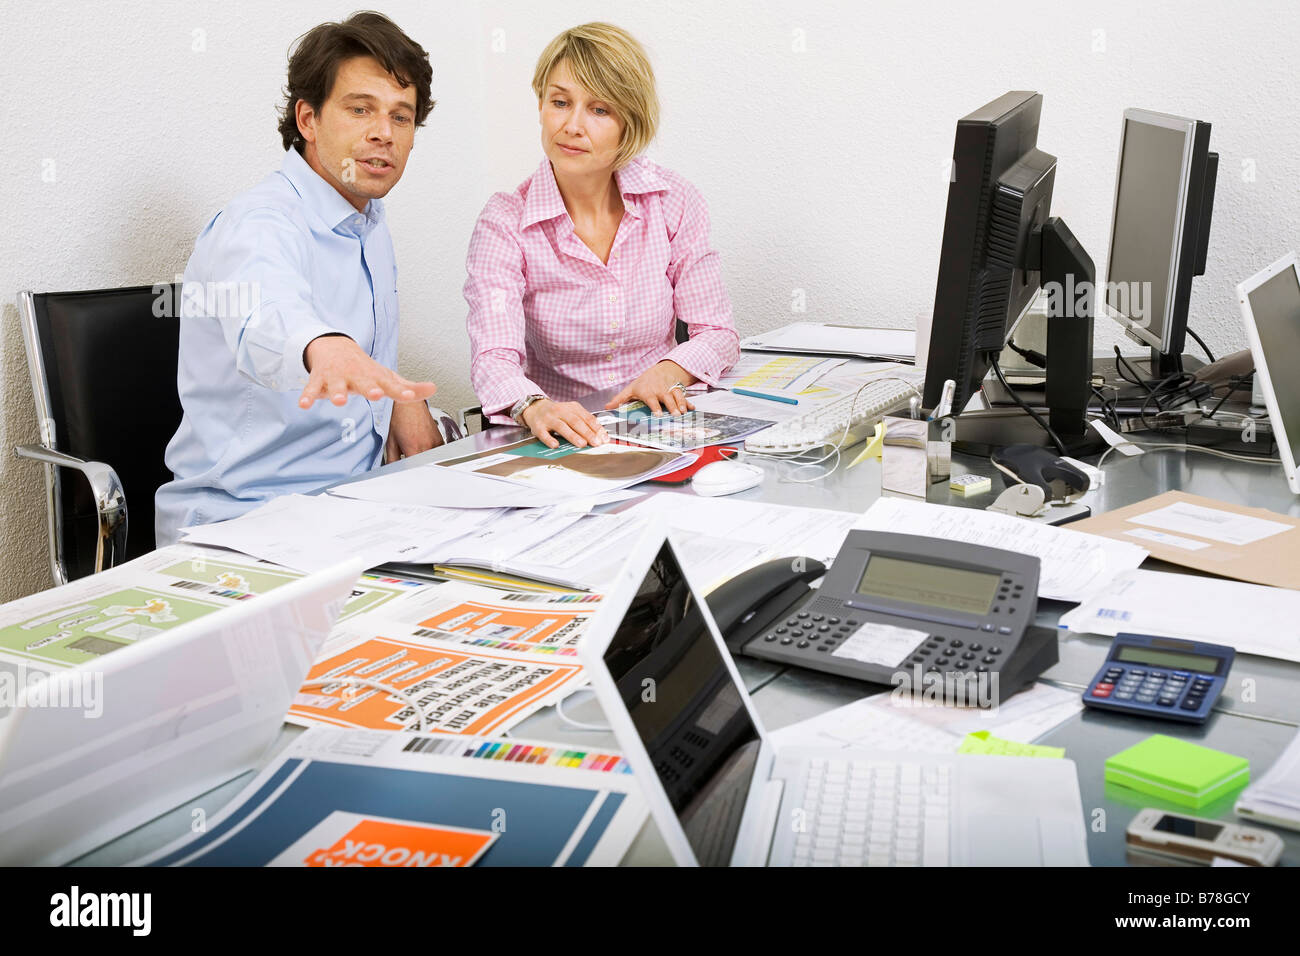 Ad agency stock photos ad agency stock images alamy employees of an advertising agency discussing an ad brochure and blueprints of an ad campaign malvernweather Gallery